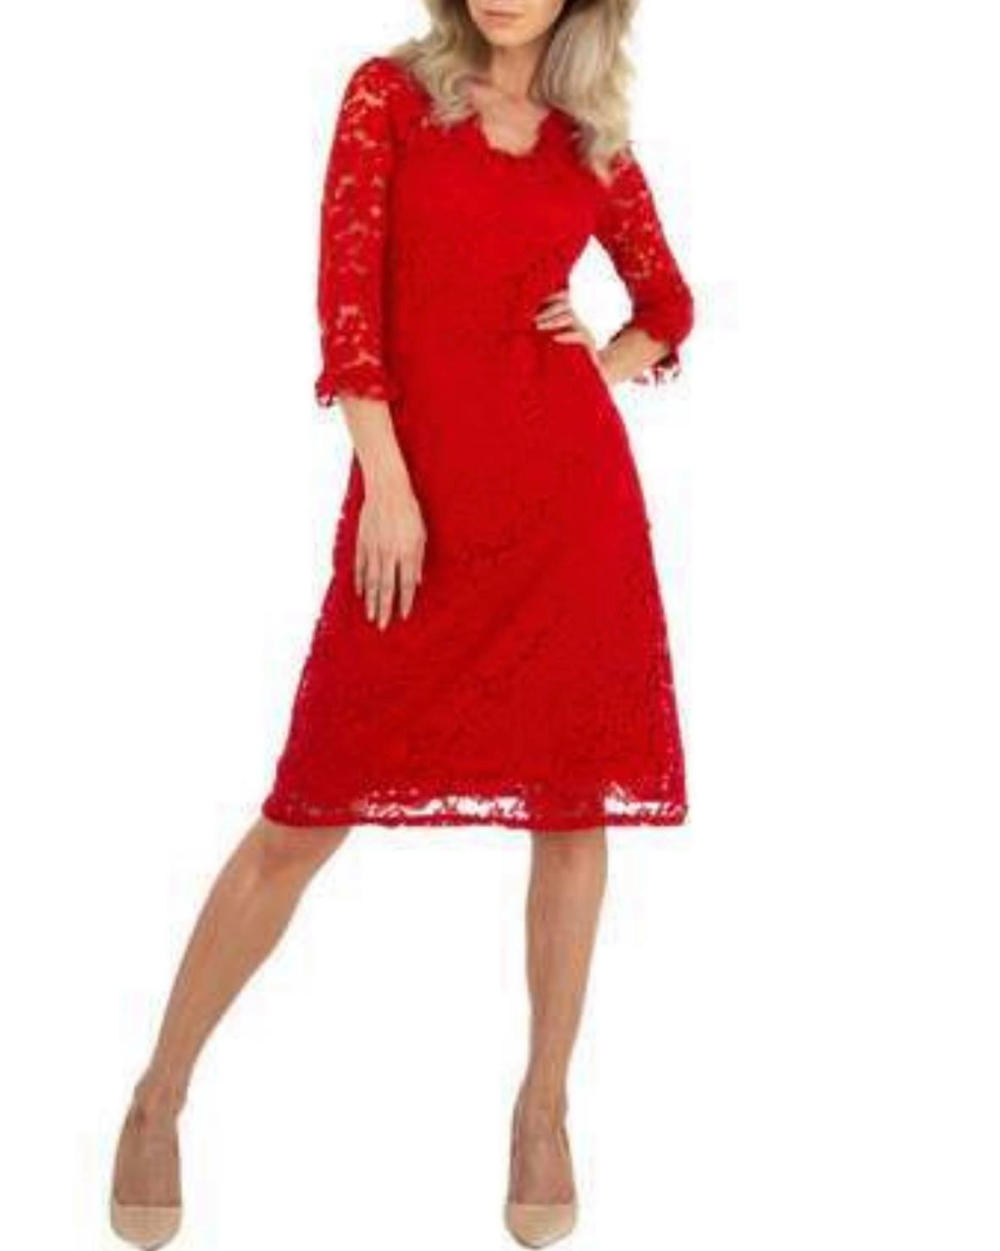 LACE COCKTAIL DRESS RED